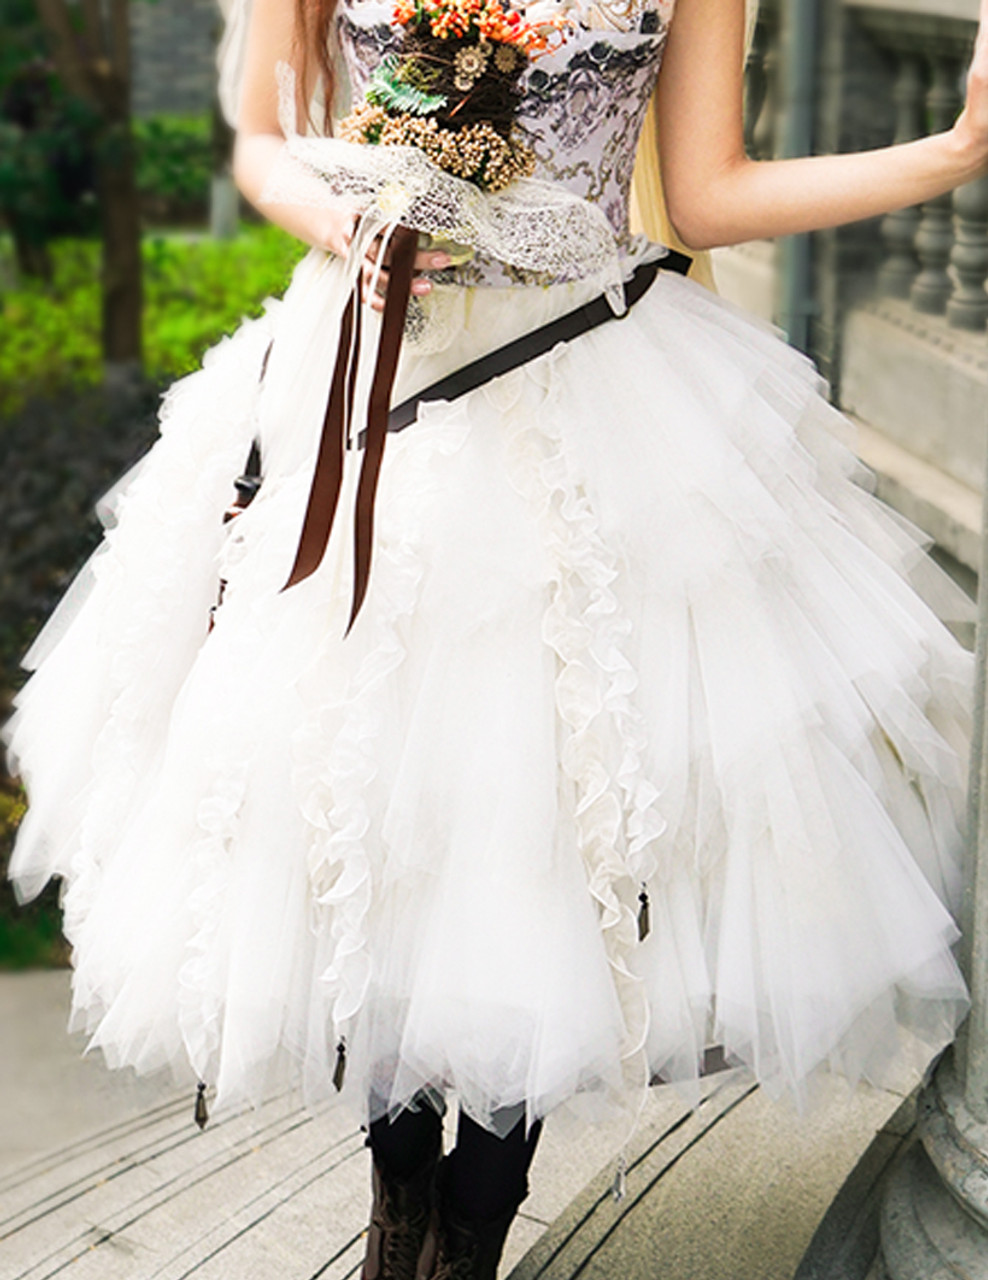 steampunk wedding dress - Wedding Decor Ideas